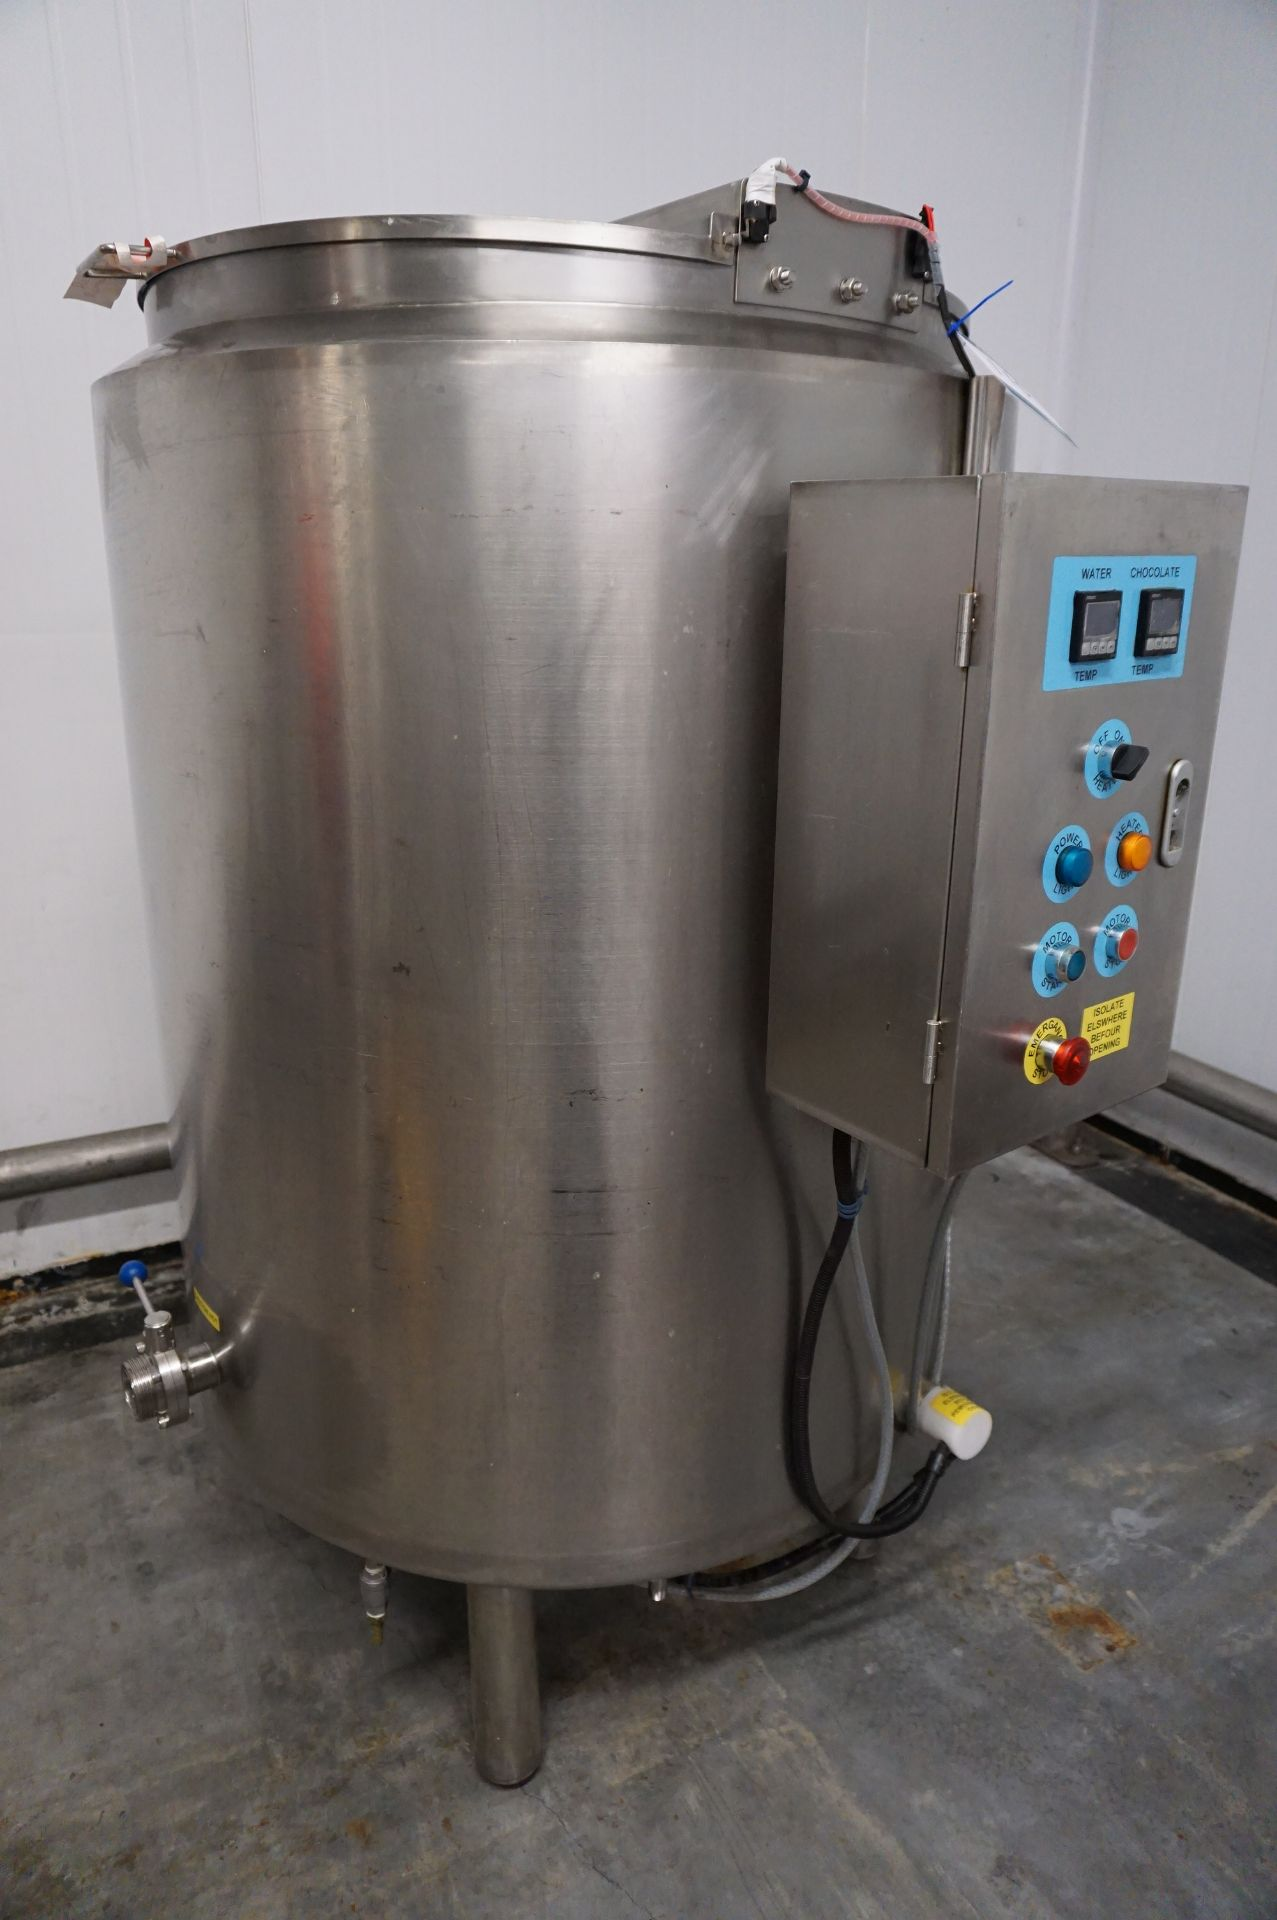 Lot 110 - Unbadged chocolate mixing vat, approx 500L with controls